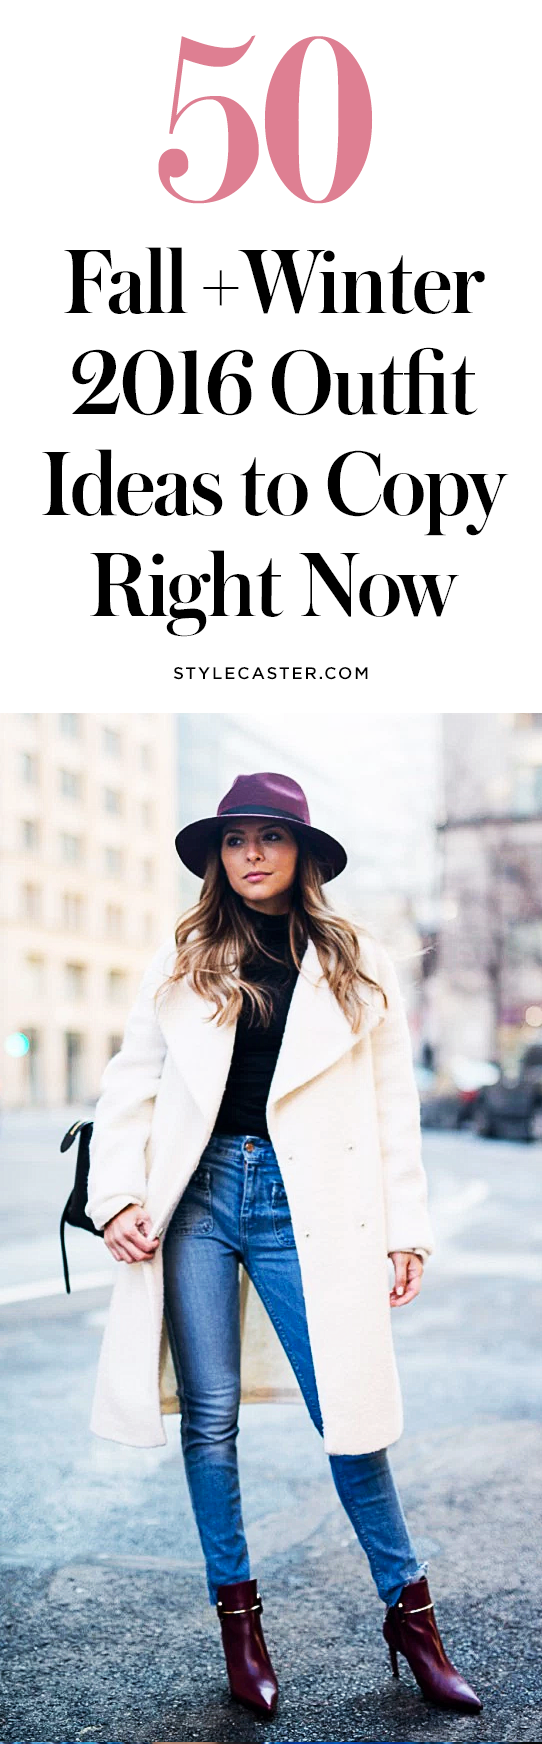 50 fall + winter outfit ideas | @stylecaster